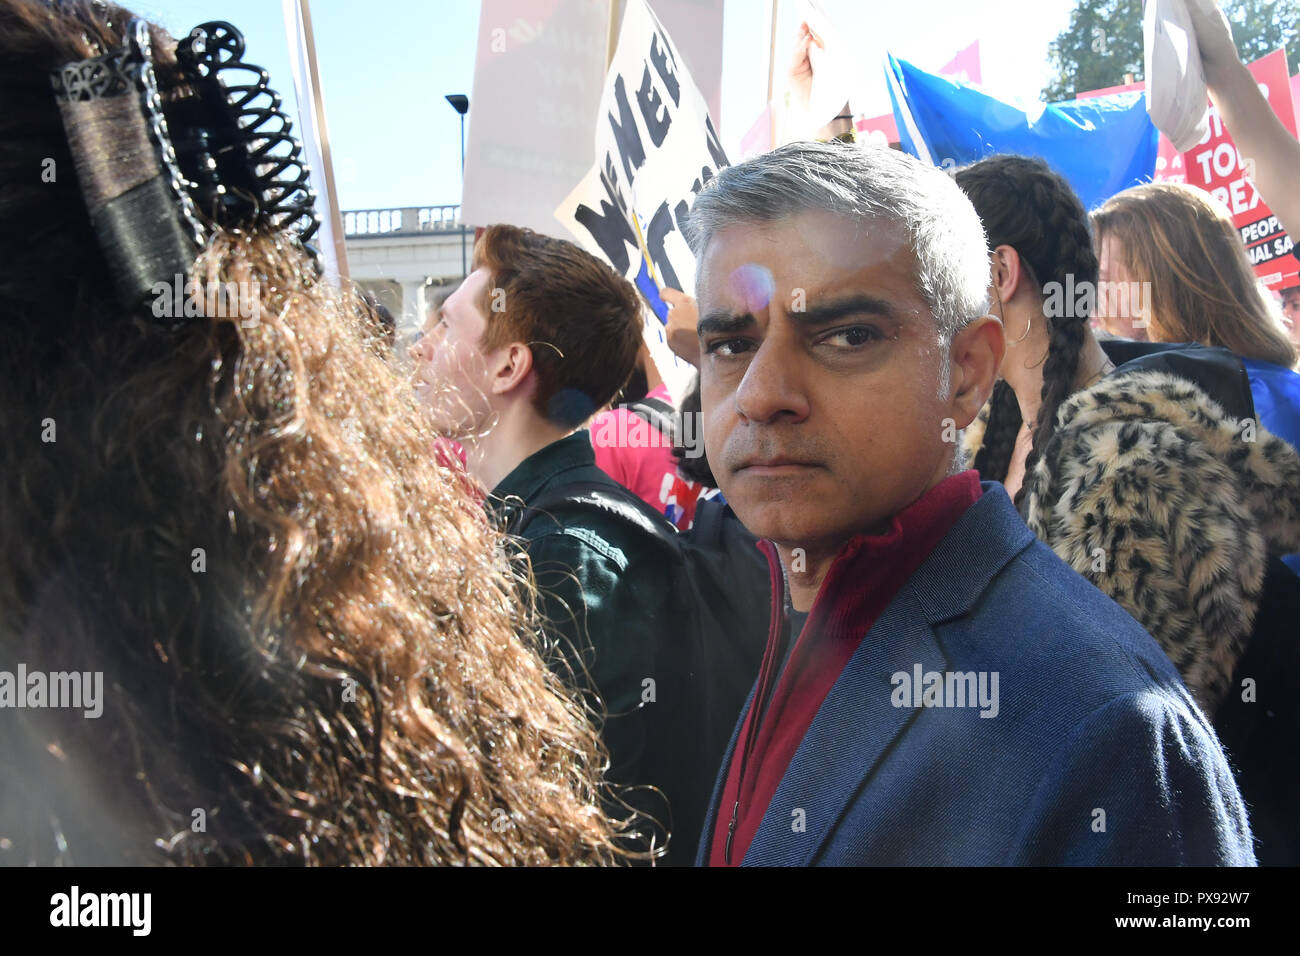 London, UK. 20th October 2018. Mayor of London,Sadiq Khan join Thousands assembly at Park lane march to Parliament Square.  March for the Future - People's Vote and March for a Final Say - Brexit Deal Referendum Campaign on 20 October 2018. Credit: Picture Capital/Alamy Live News Stock Photo